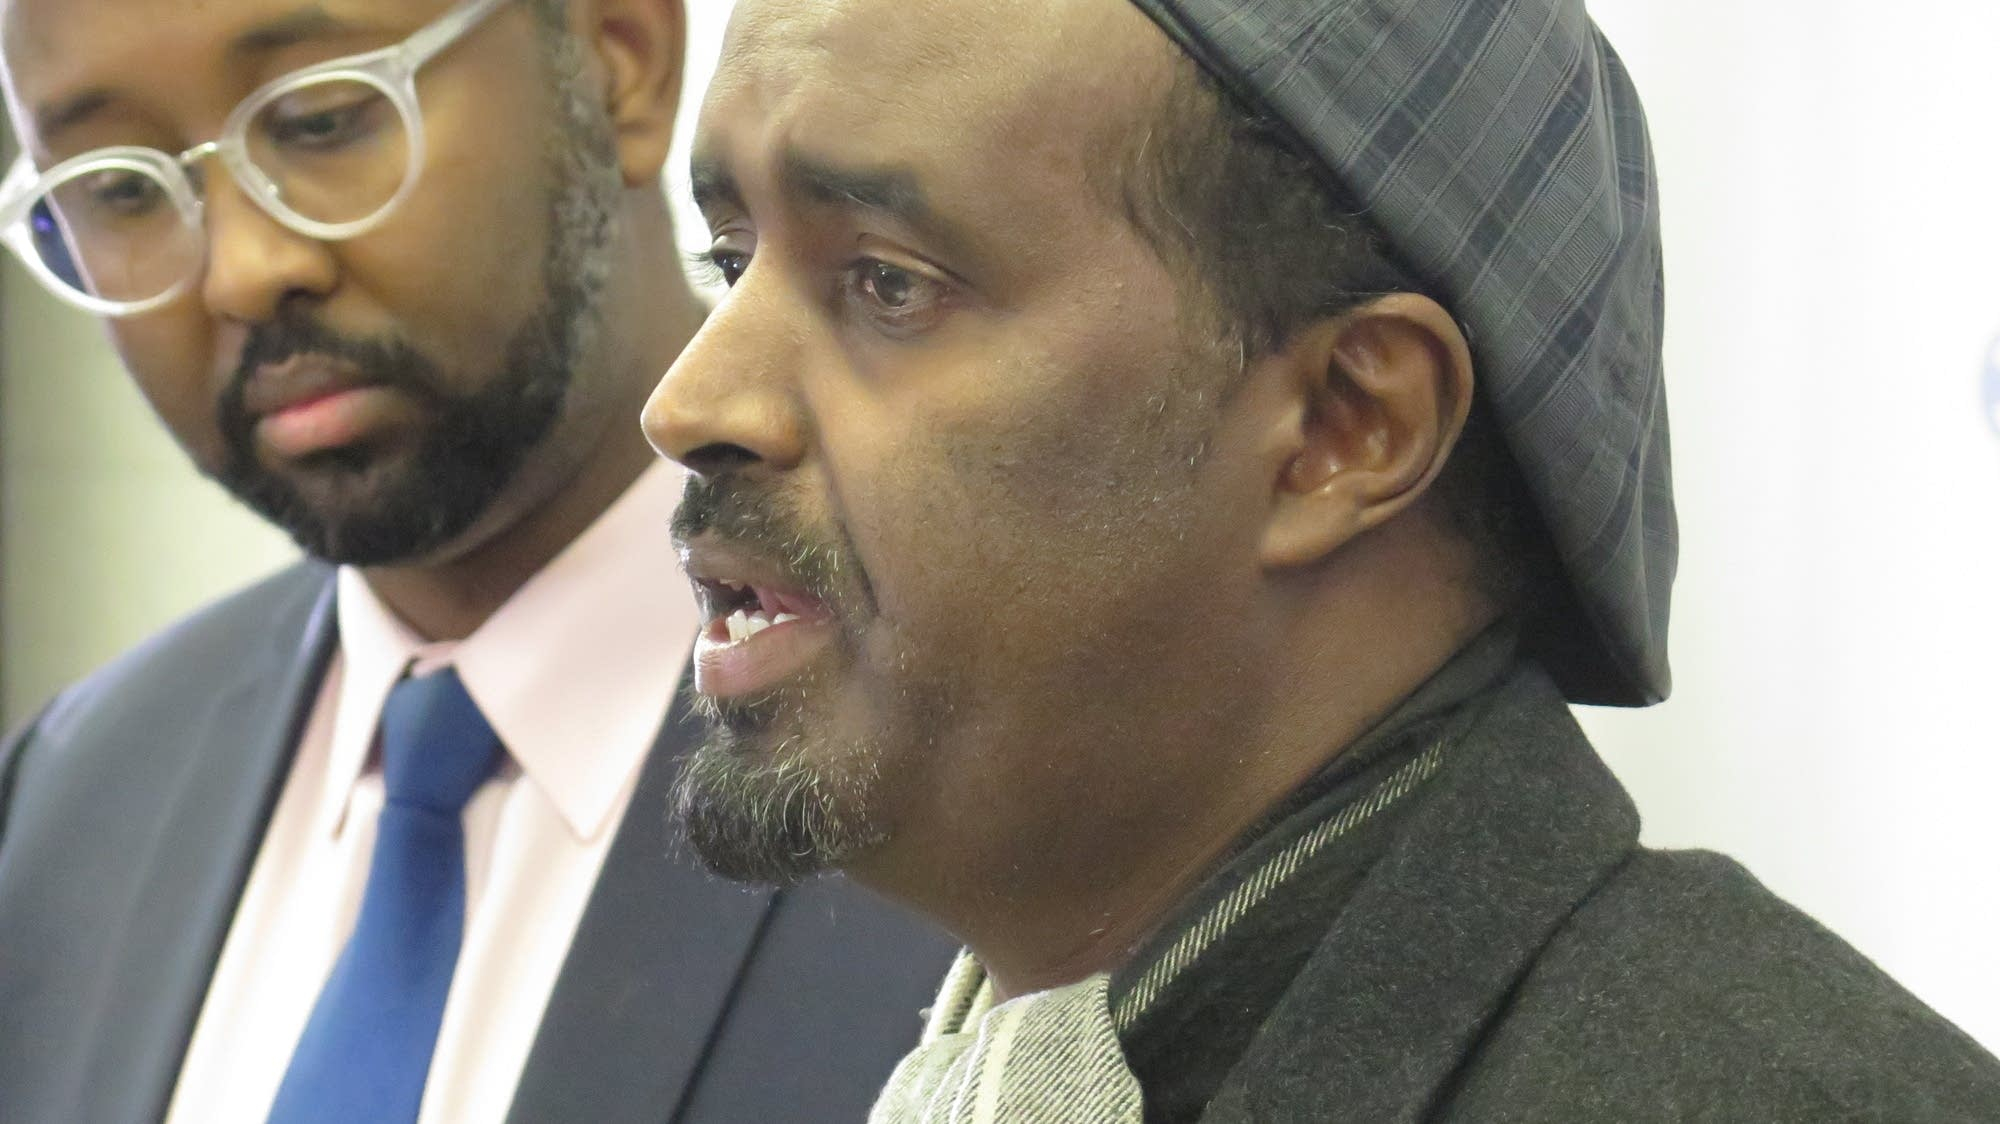 Haarun Galbayte, right, speaks to reporters alongside Jaylani Hussein, executive director of the Minnesota chapter of the Council on American-Islamic Relations in Minneapolis on Thursday. Matt Sepic | MPR News